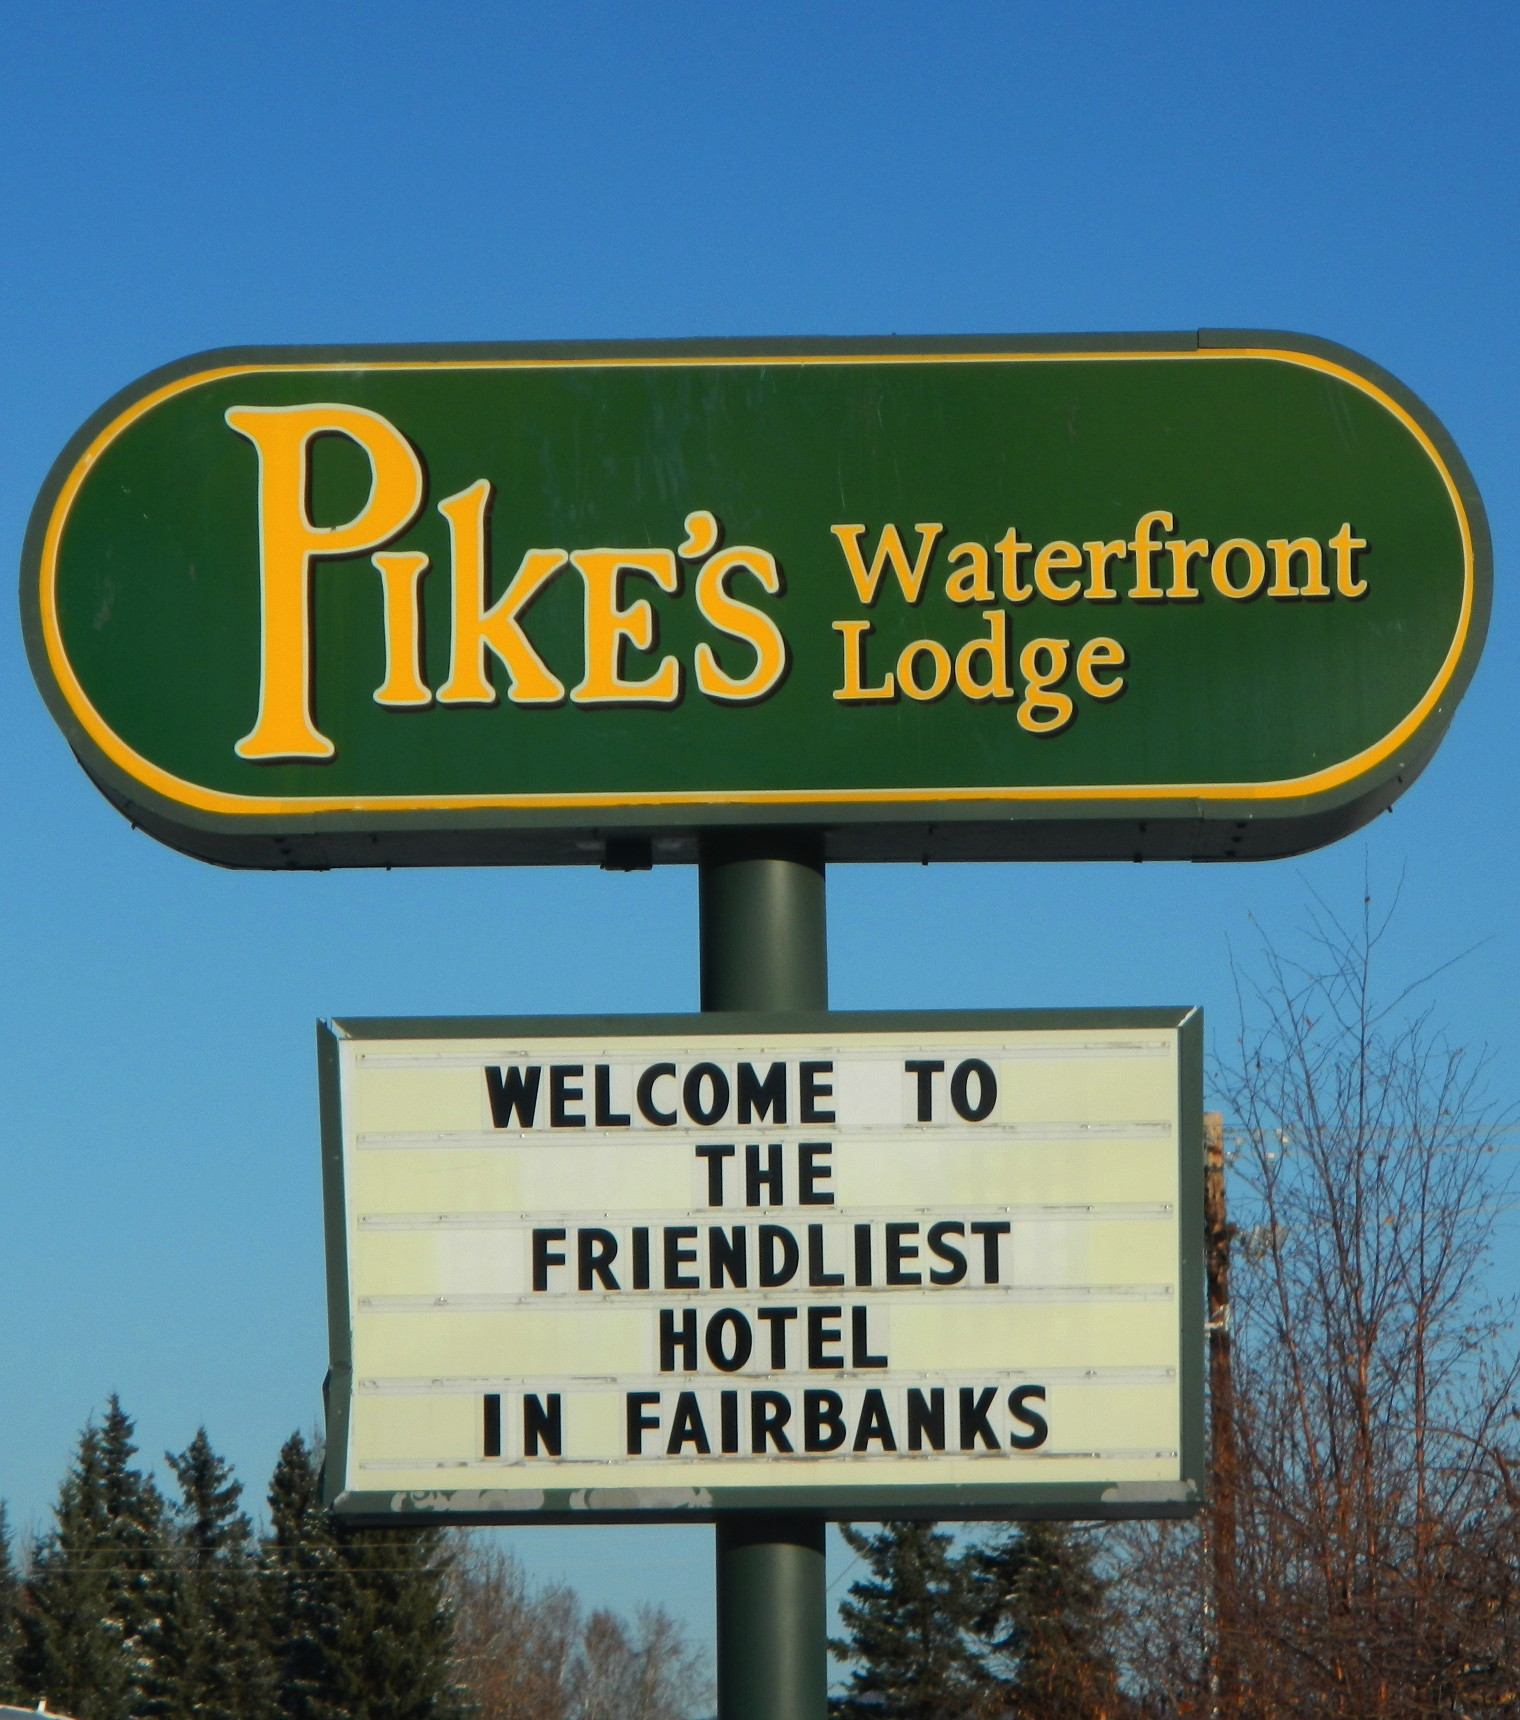 Pet Friendly Hotels Fairbanks